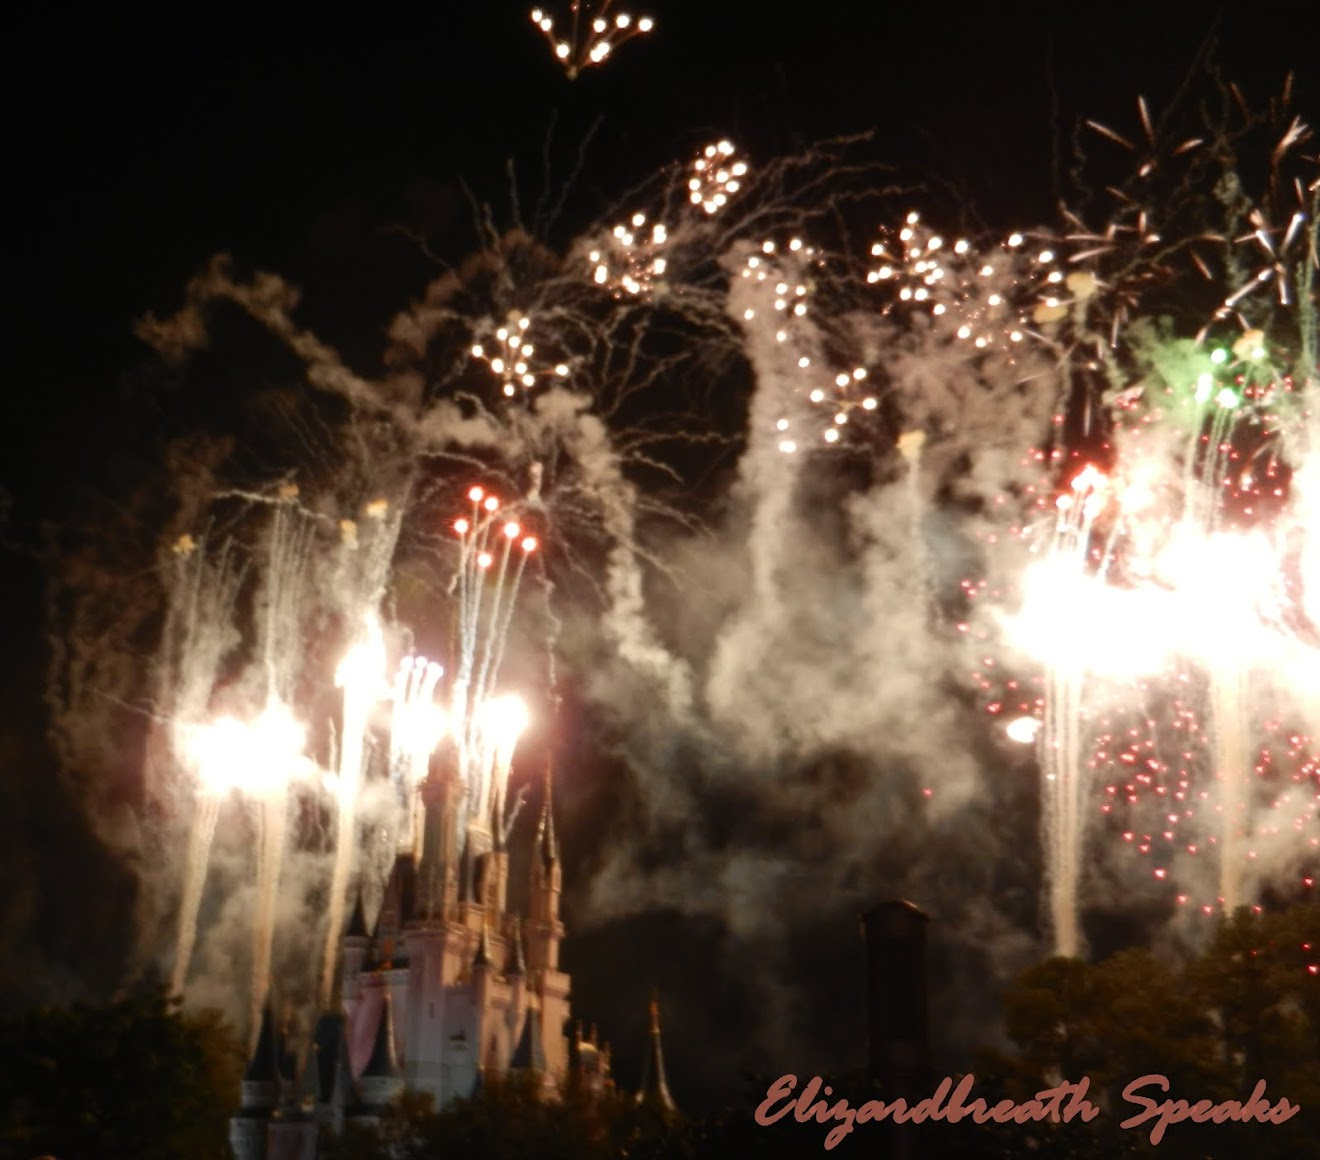 fireworks at Disney World, Florida